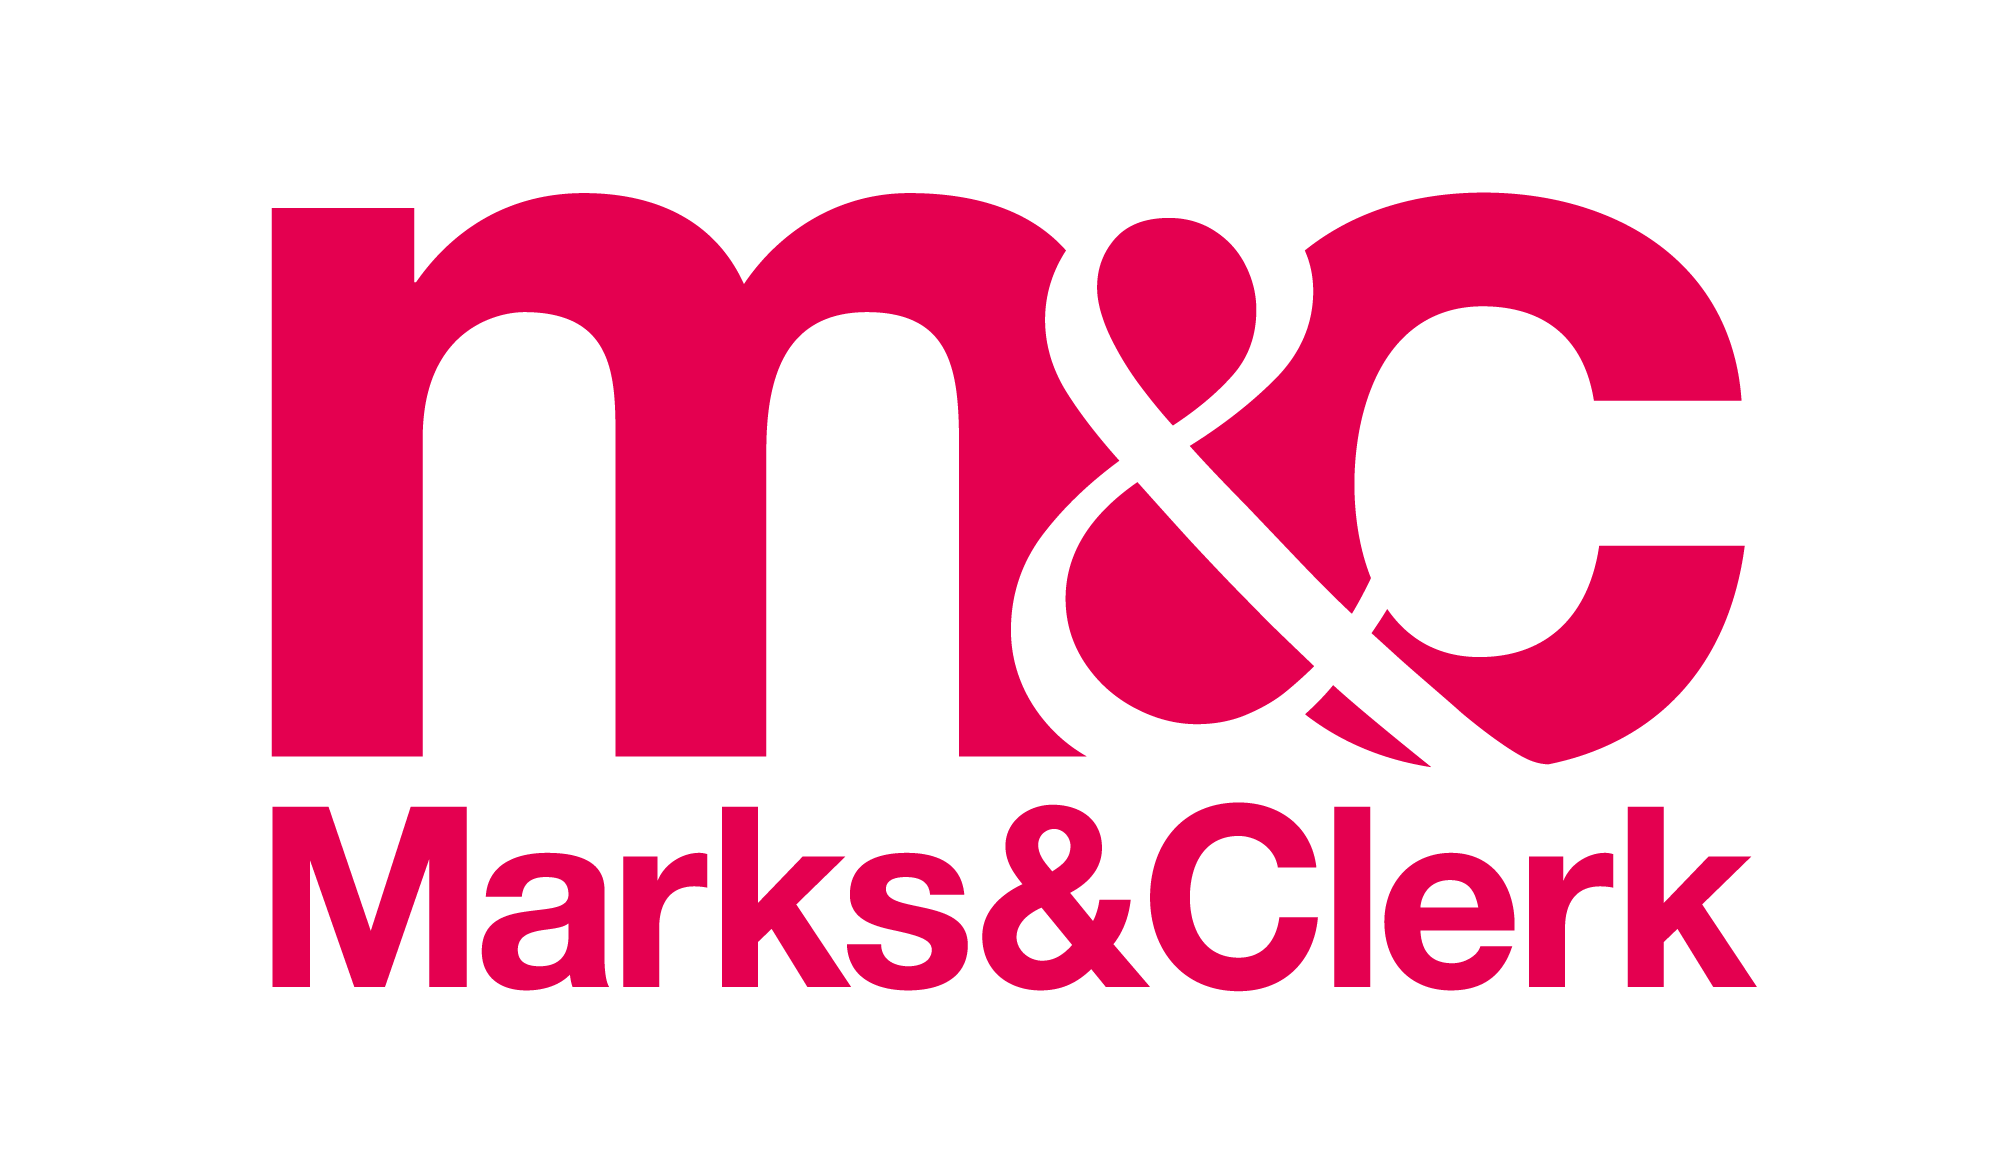 M&C Marks&Clerk_Stacked logo_RGB